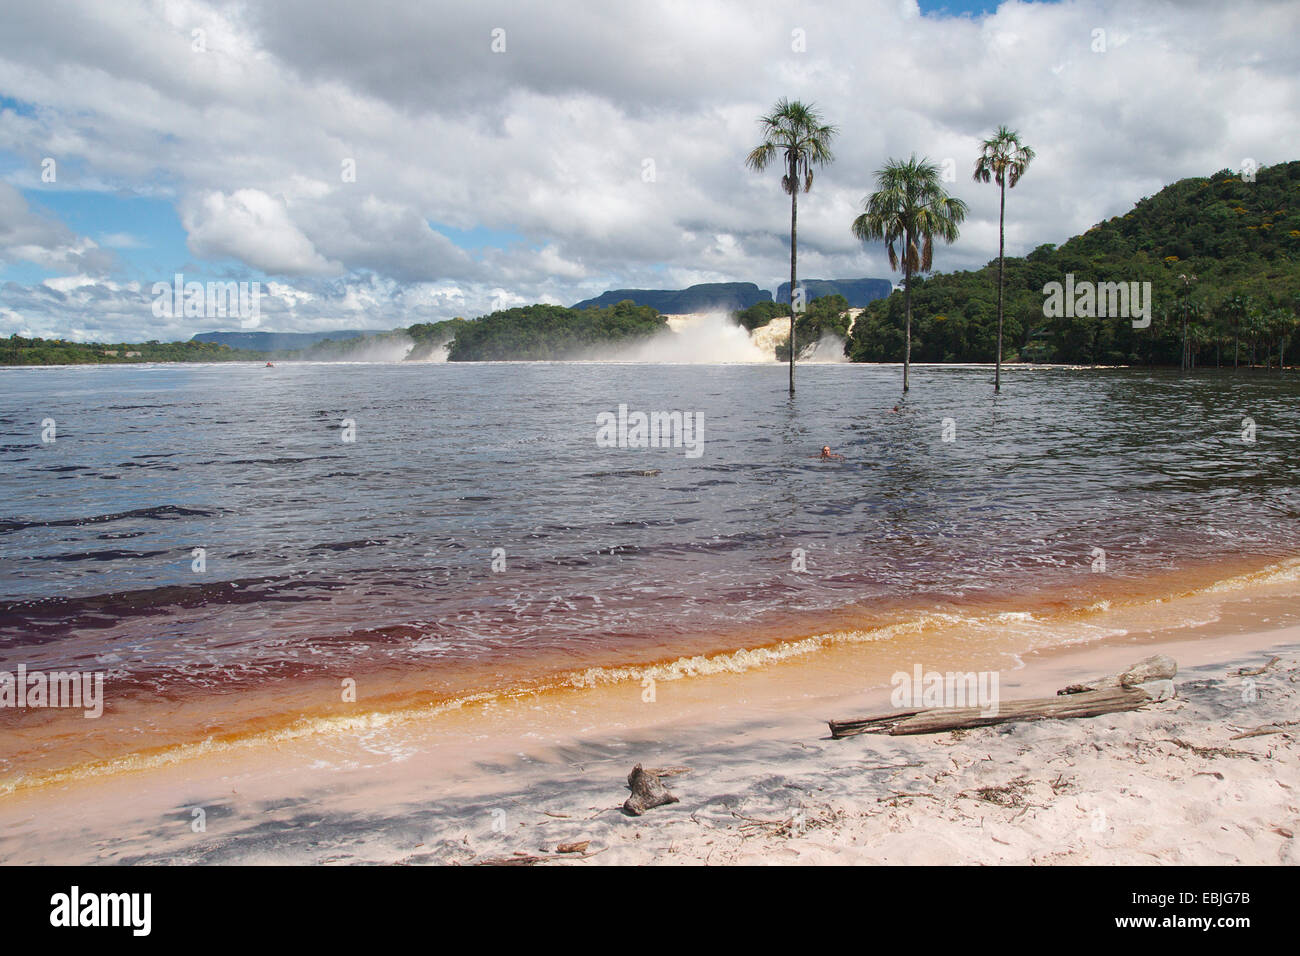 lagoon and waterfall of Canaima, Venezuela, Canaima National Park - Stock Image